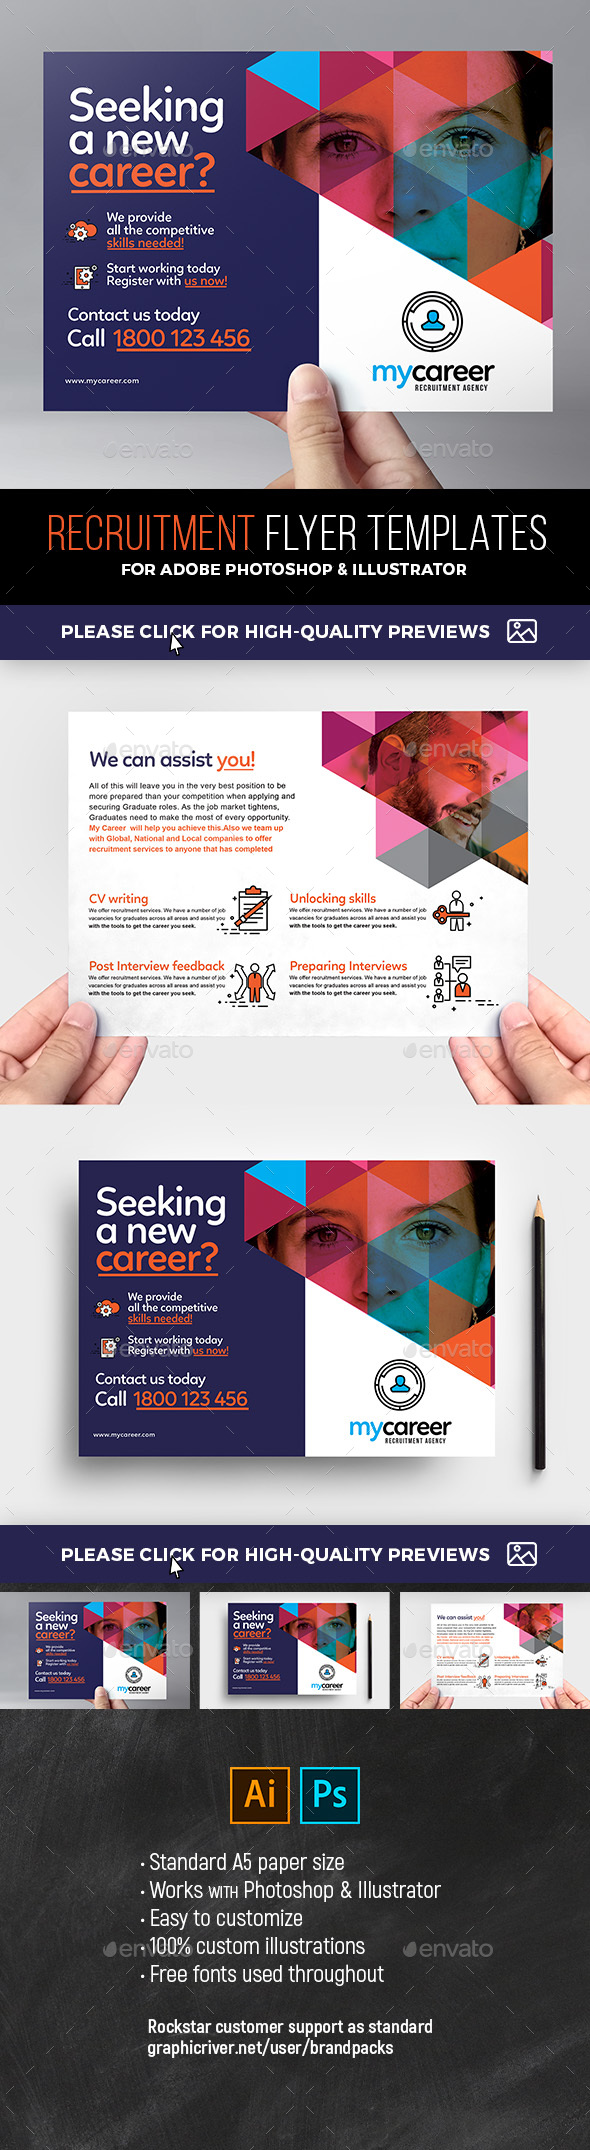 Recruitment Agency Flyer Templates - Corporate Flyers